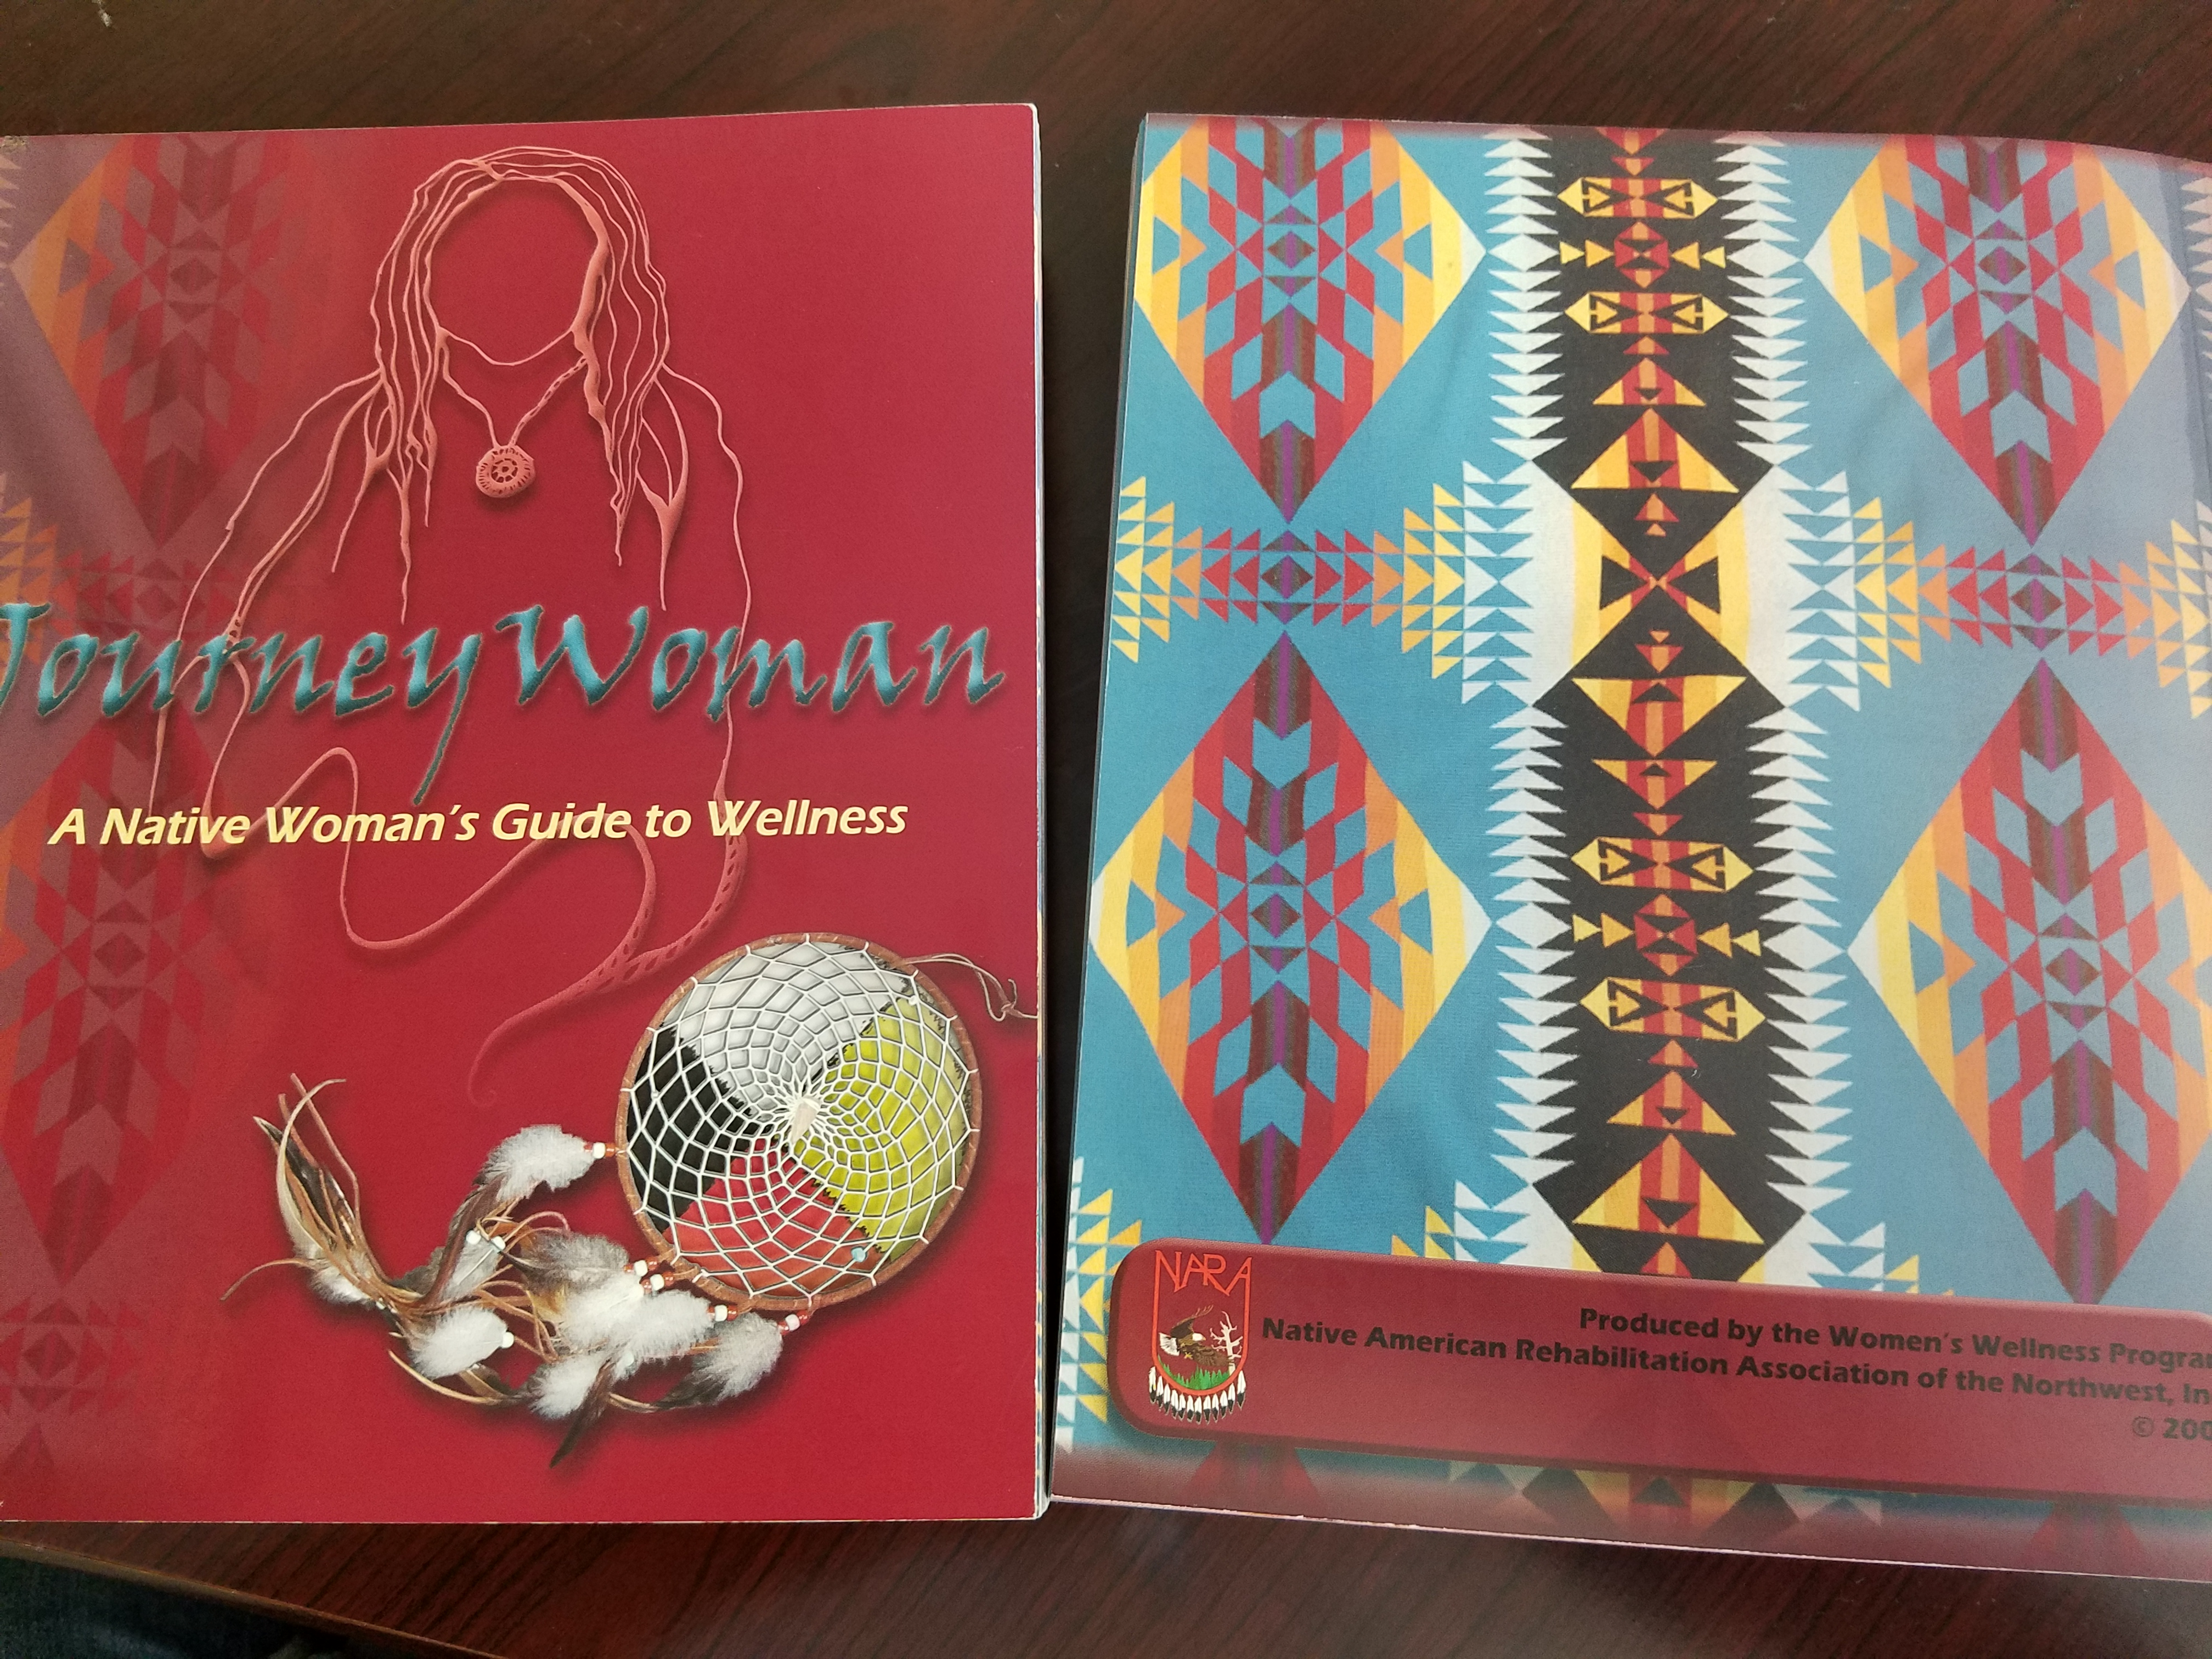 Books on Native Women's Wellness featuring Pendleton patterns.